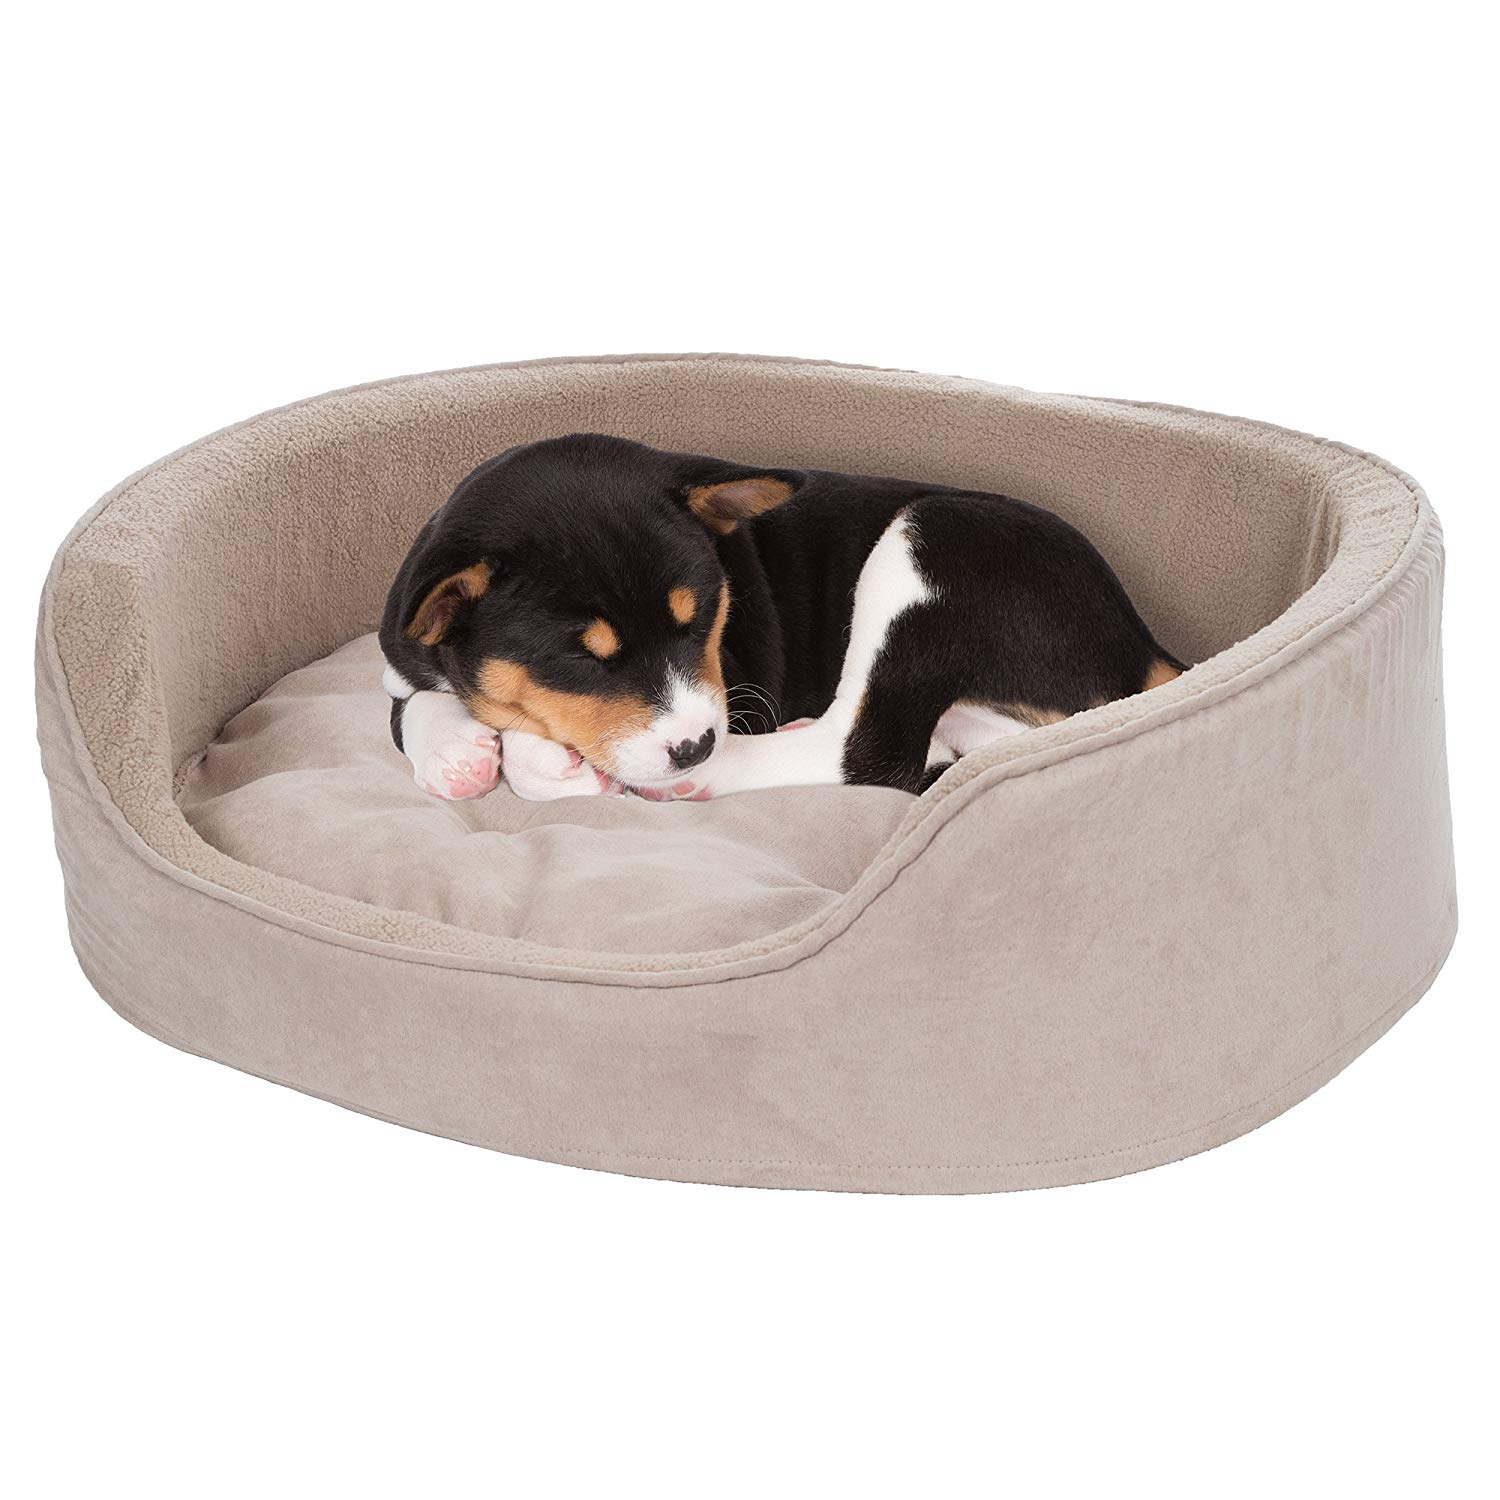 PETMAKER Large Cuddle Round Microsuede Pet Bed